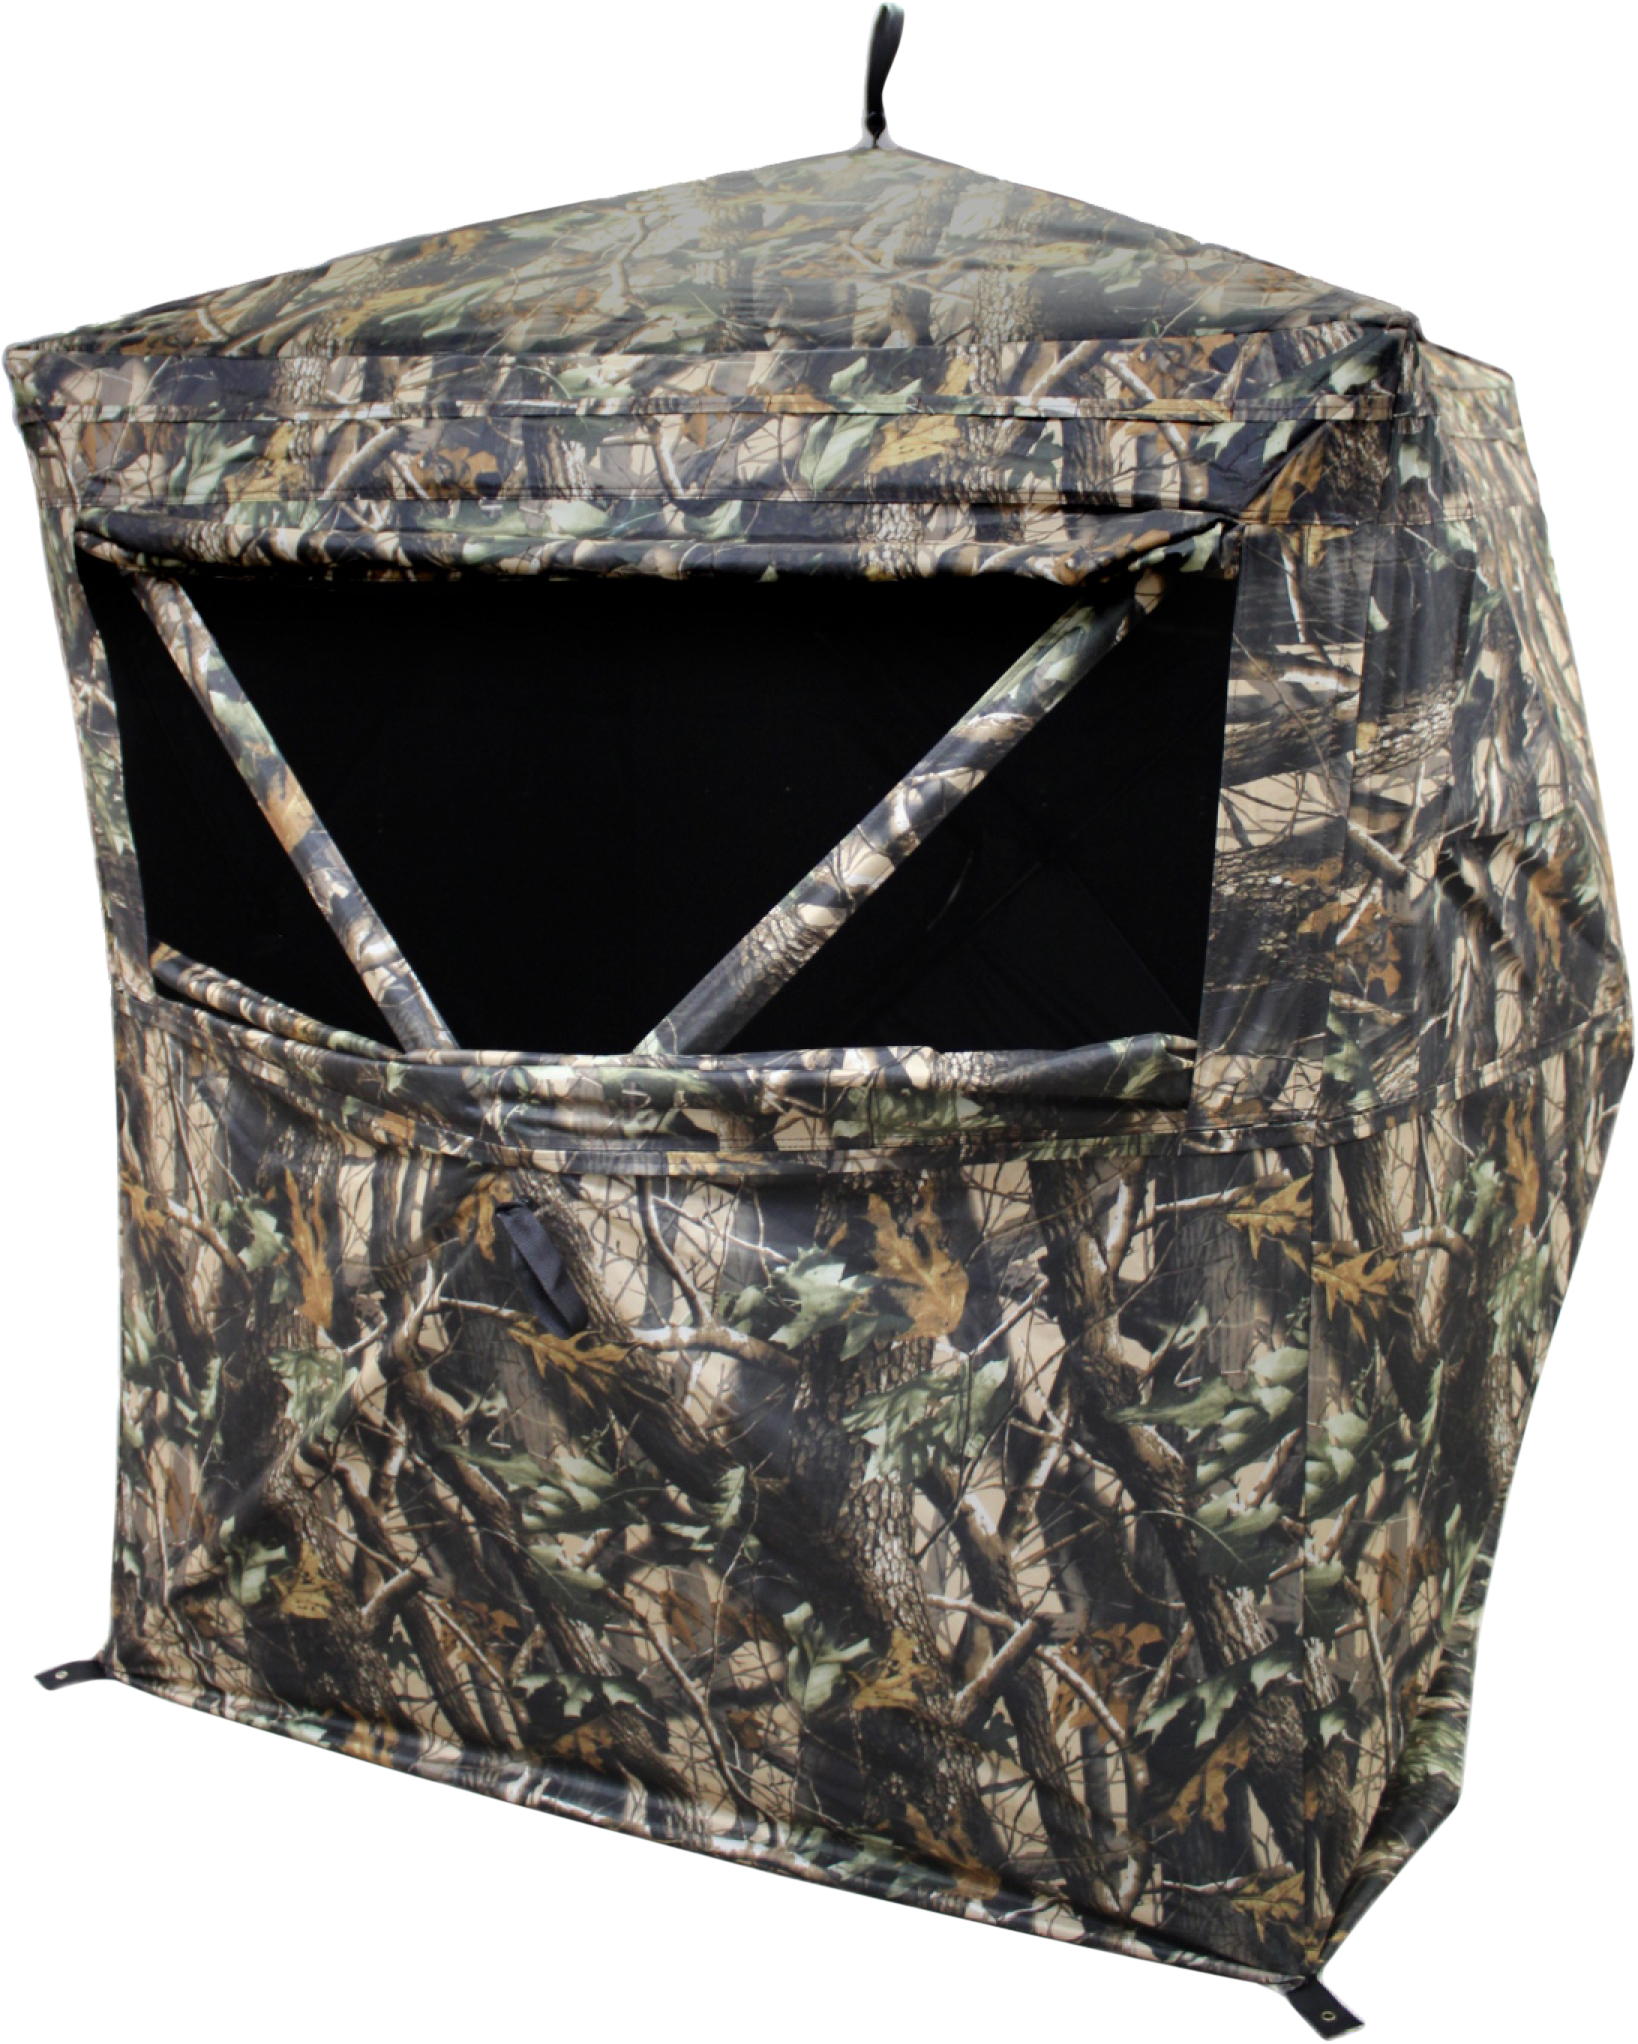 HME Executioner 3-Person Ground Blind - Camo